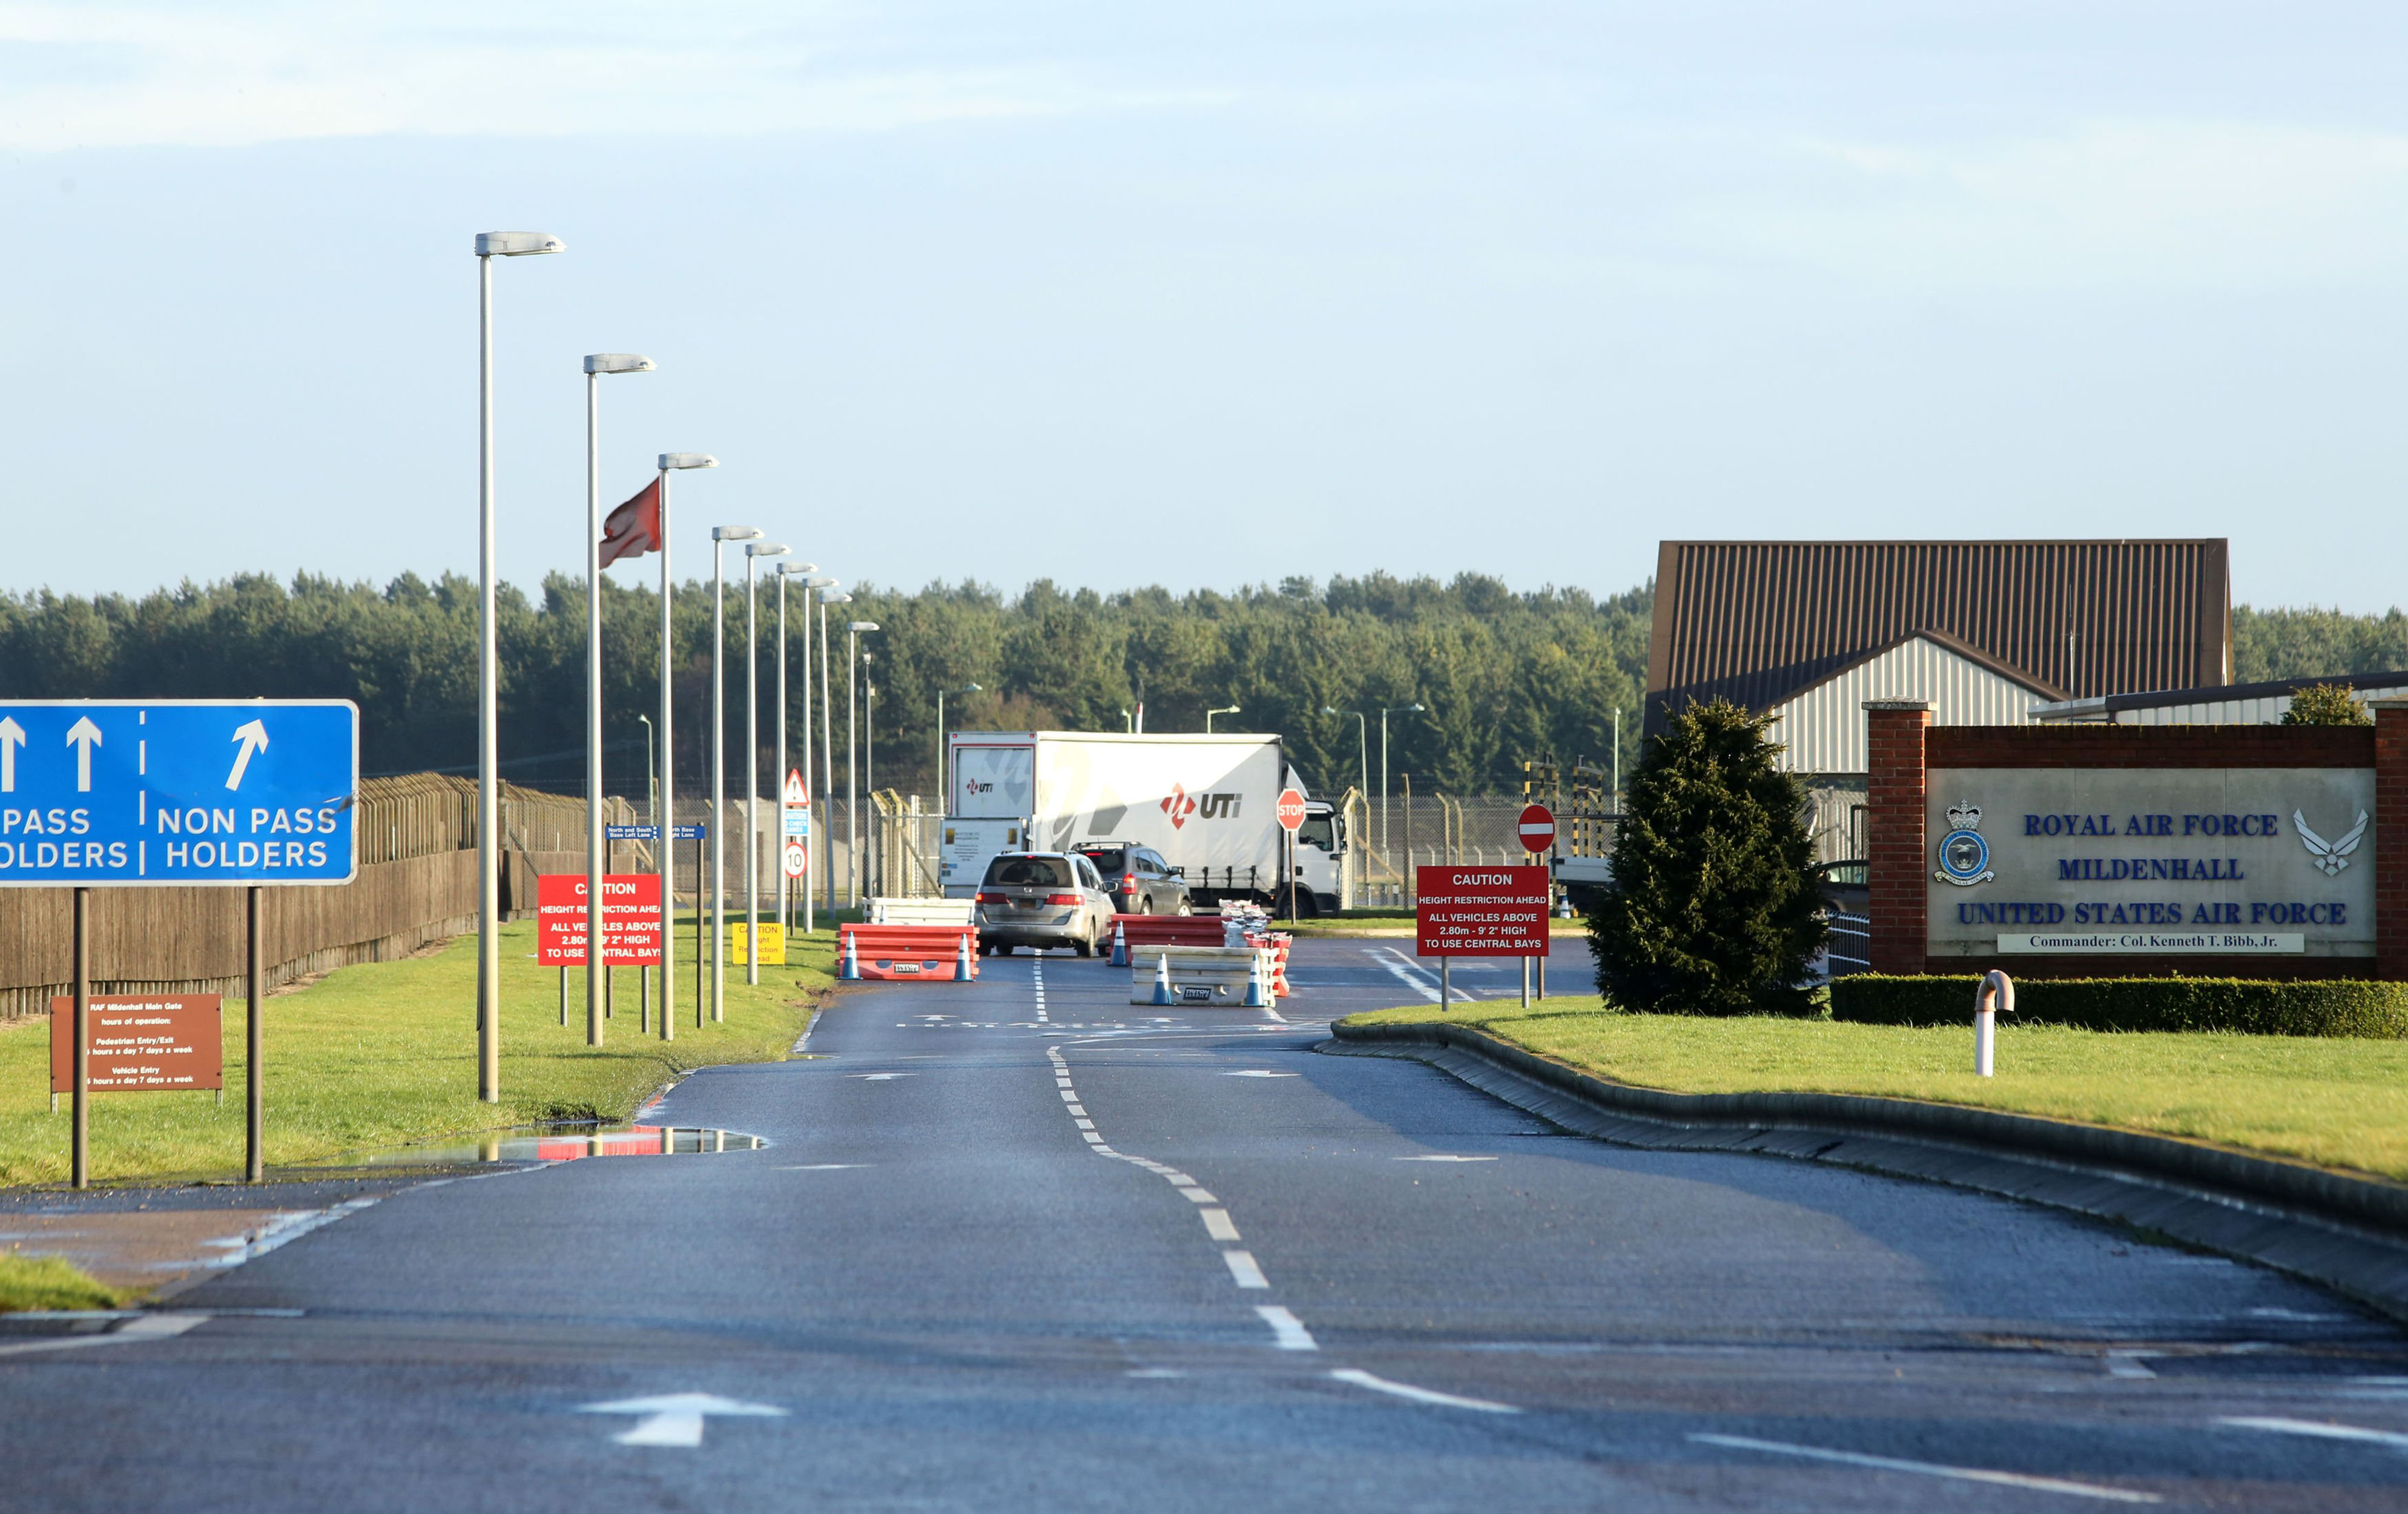 Shots fired at U.S. base in U.K. after suspect attempts entry